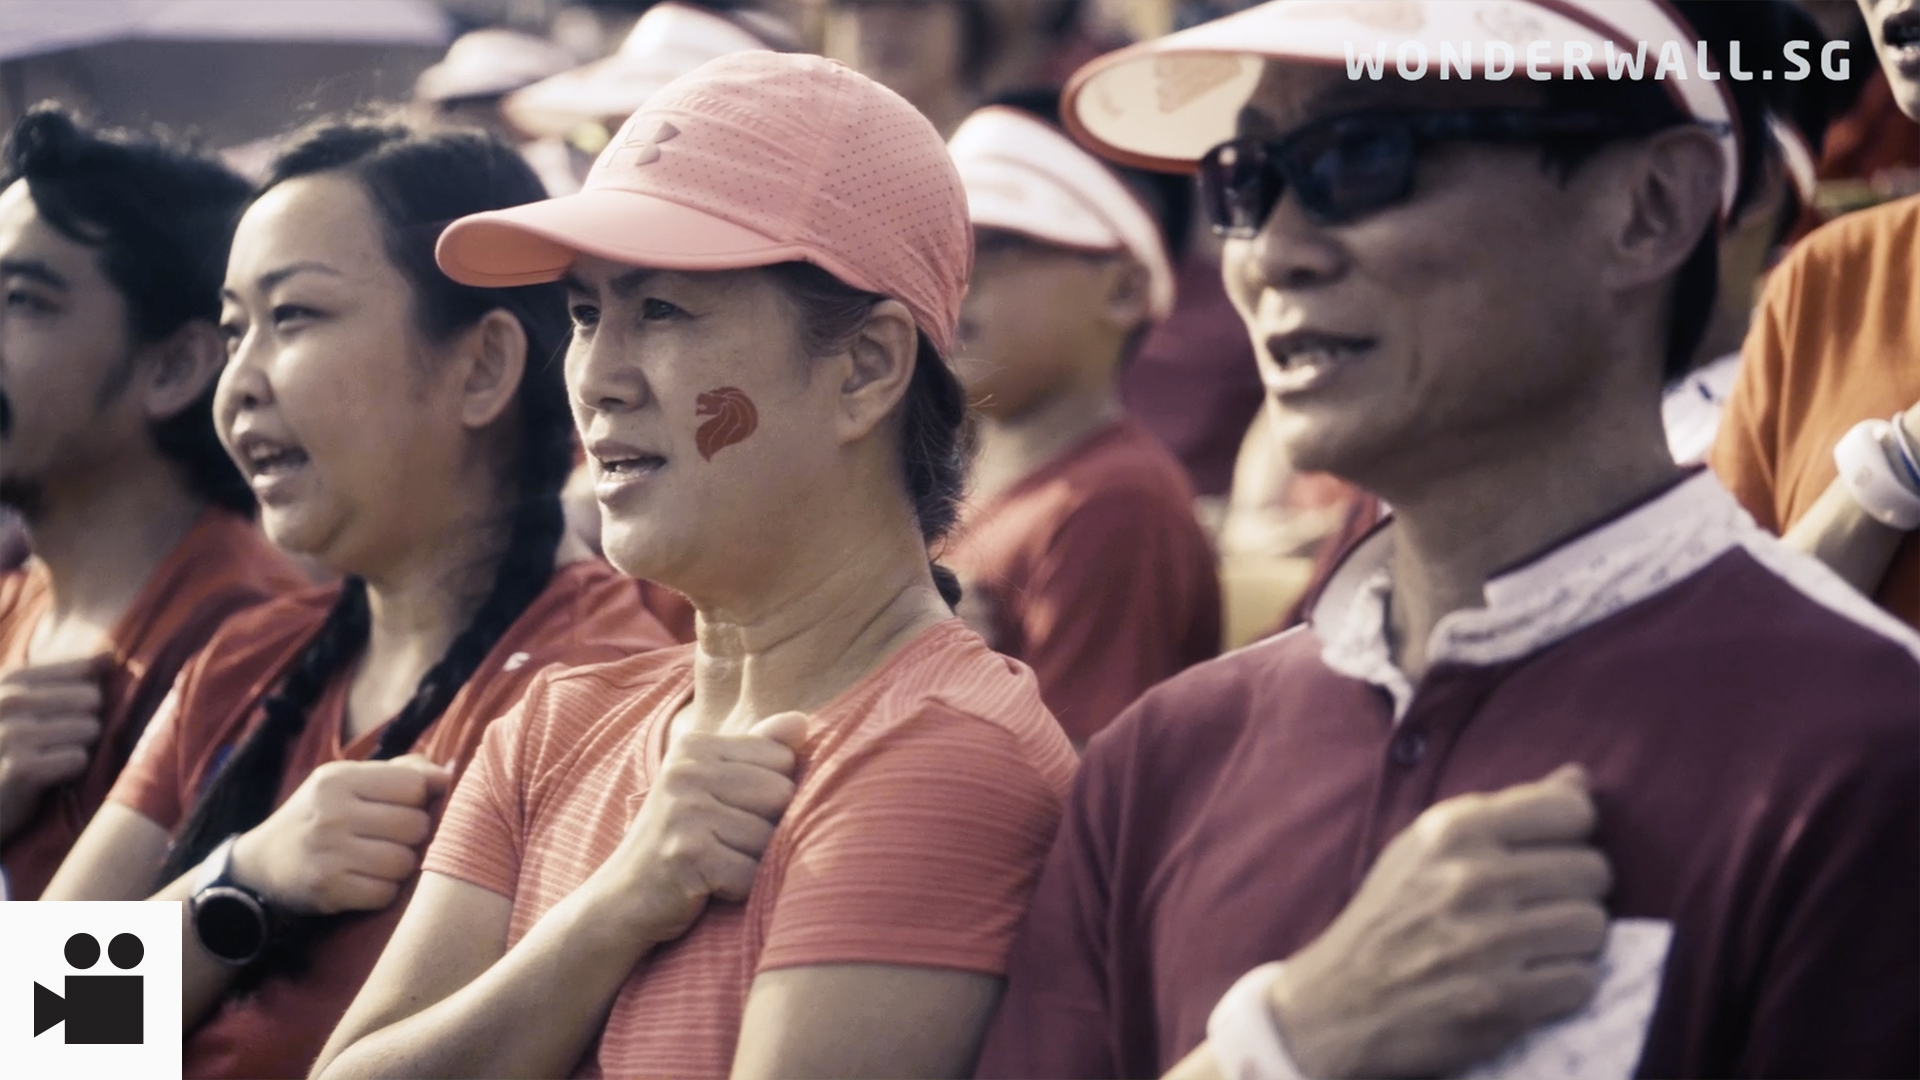 Our Pledge, Our People, Our Singapore - Scenes From NDP 2019